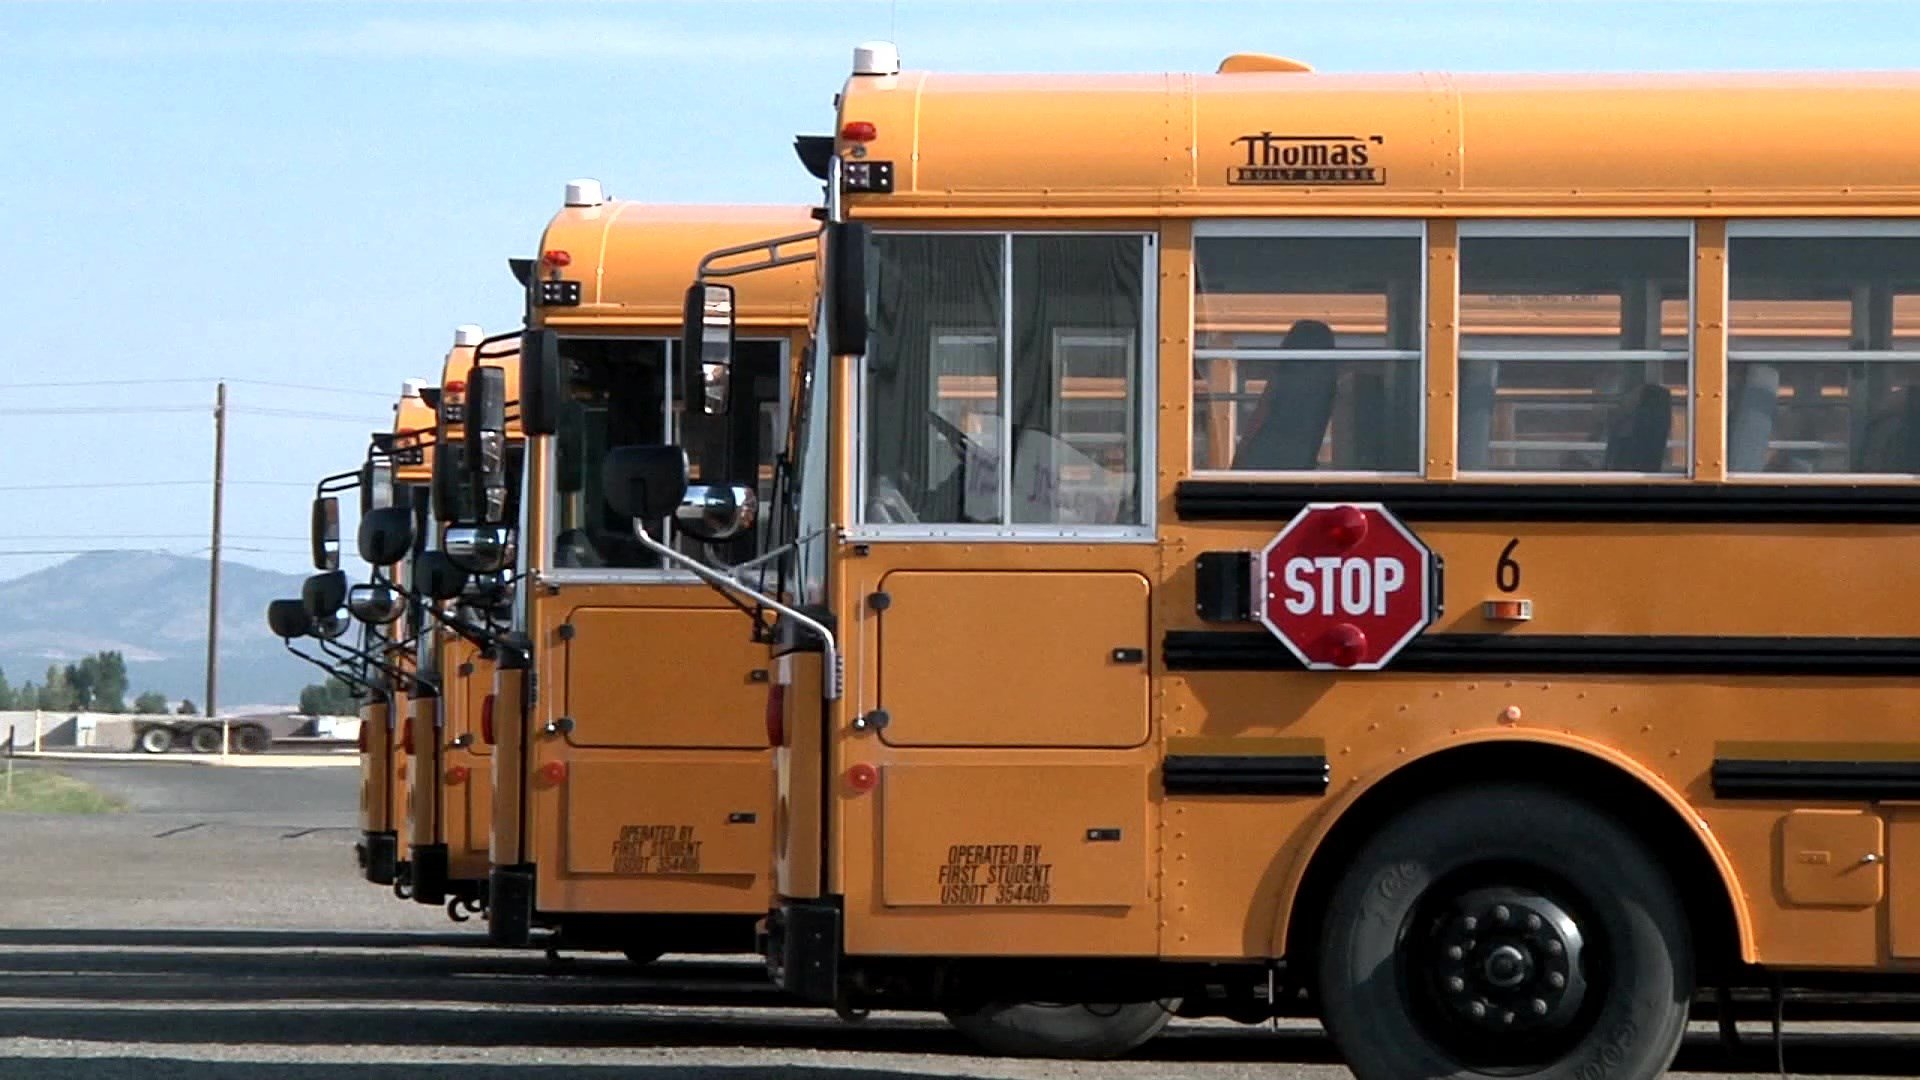 Back to school bus safety reminders